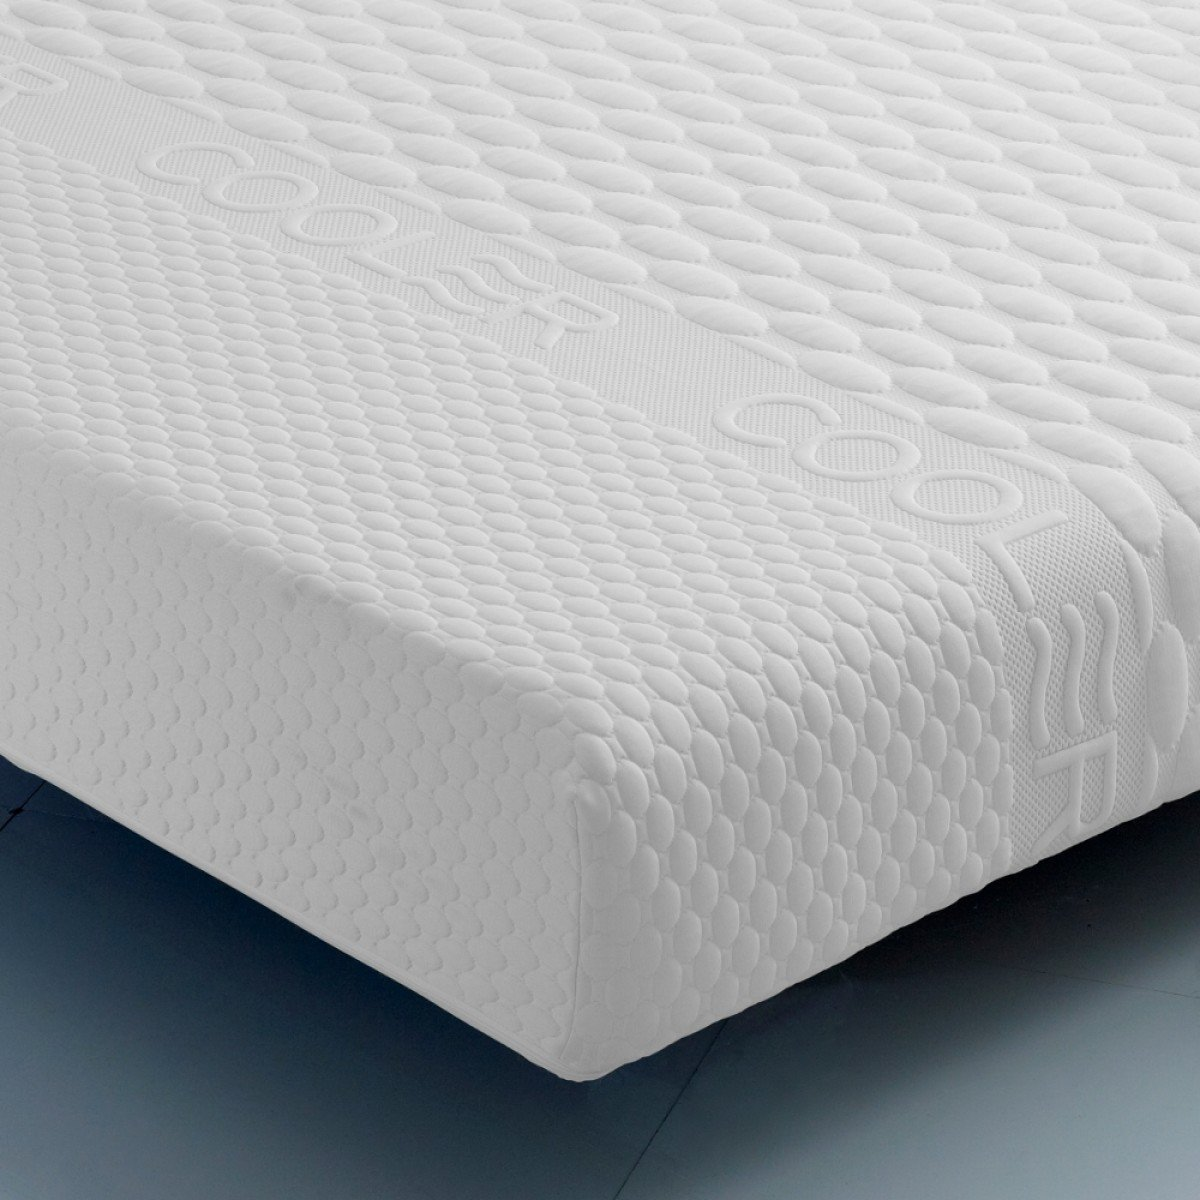 Impressions Laytech Memory, Latex and Reflex Foam Orthopaedic Mattress